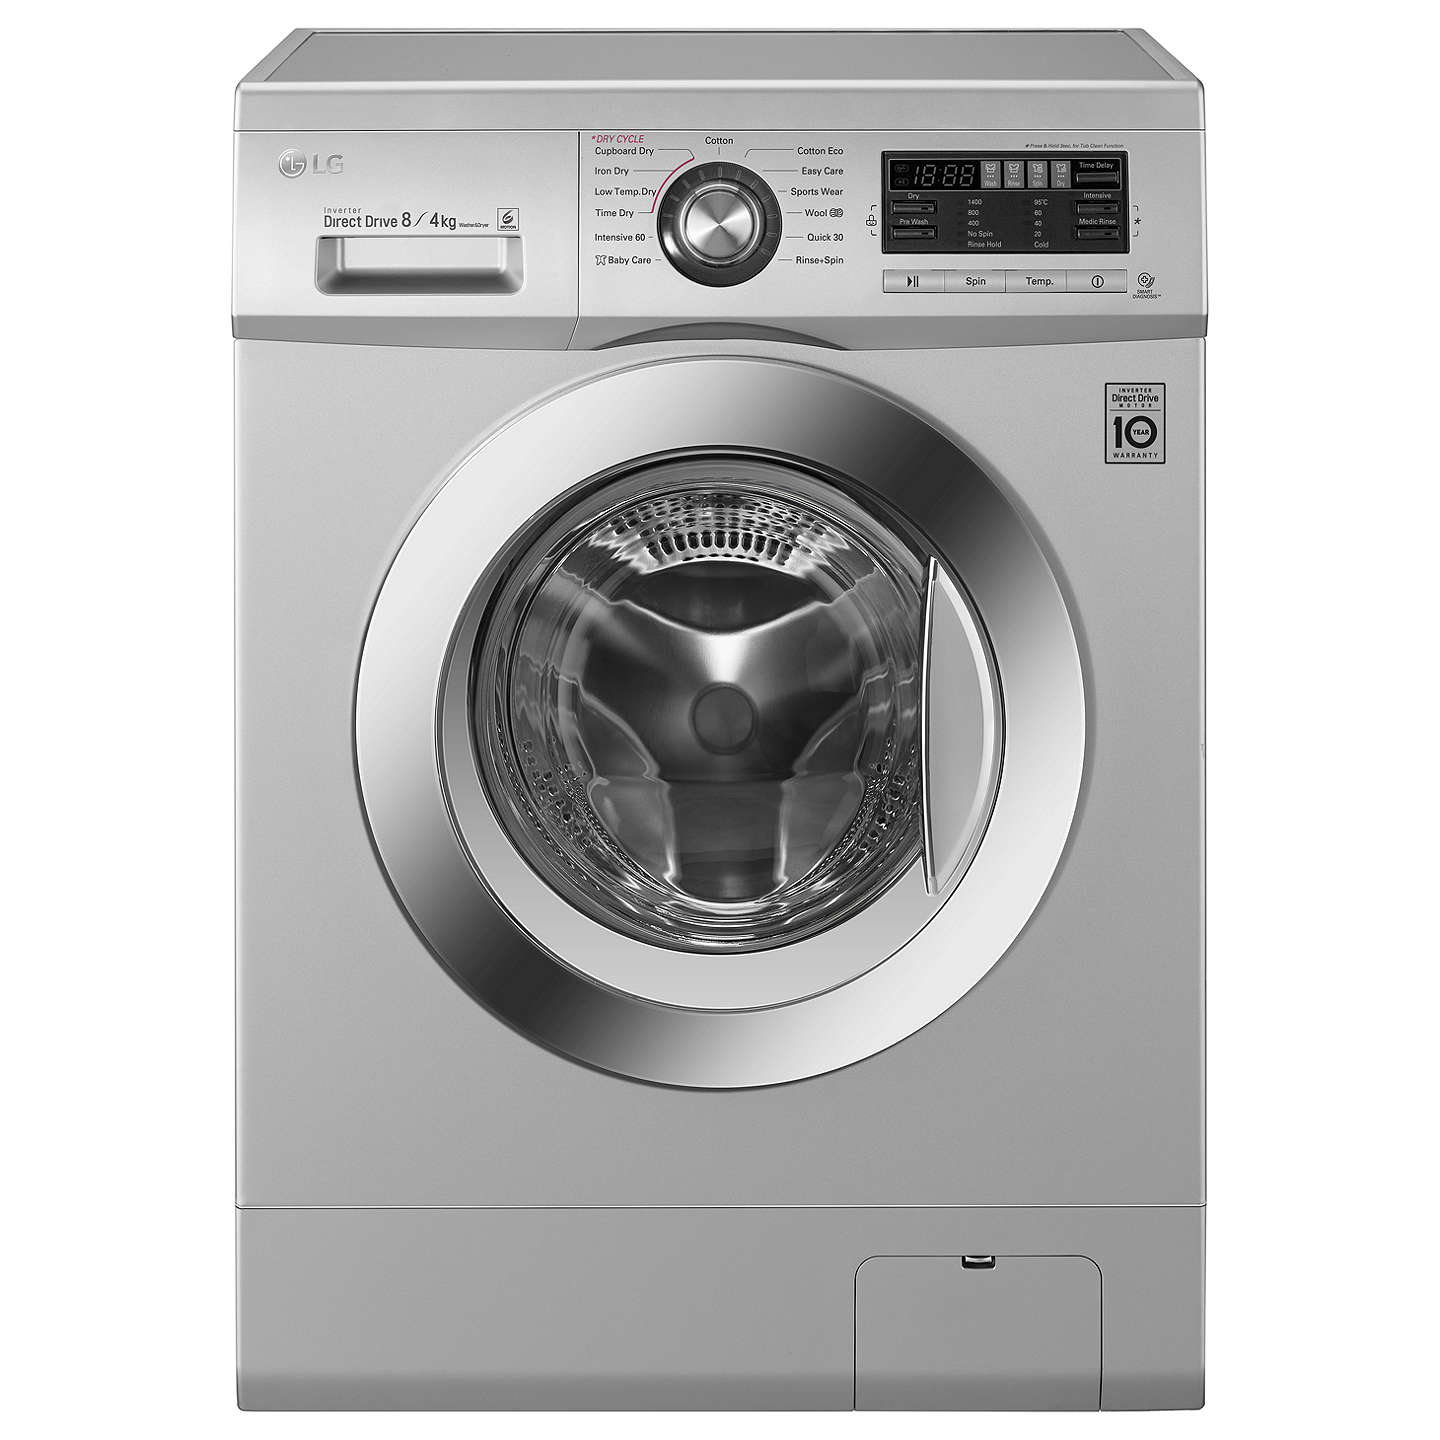 Lg f1496ad5 freestanding washer dryer 8kg wash4kg dry load b buylg f1496ad5 freestanding washer dryer 8kg wash4kg dry load b energy rating solutioingenieria Choice Image